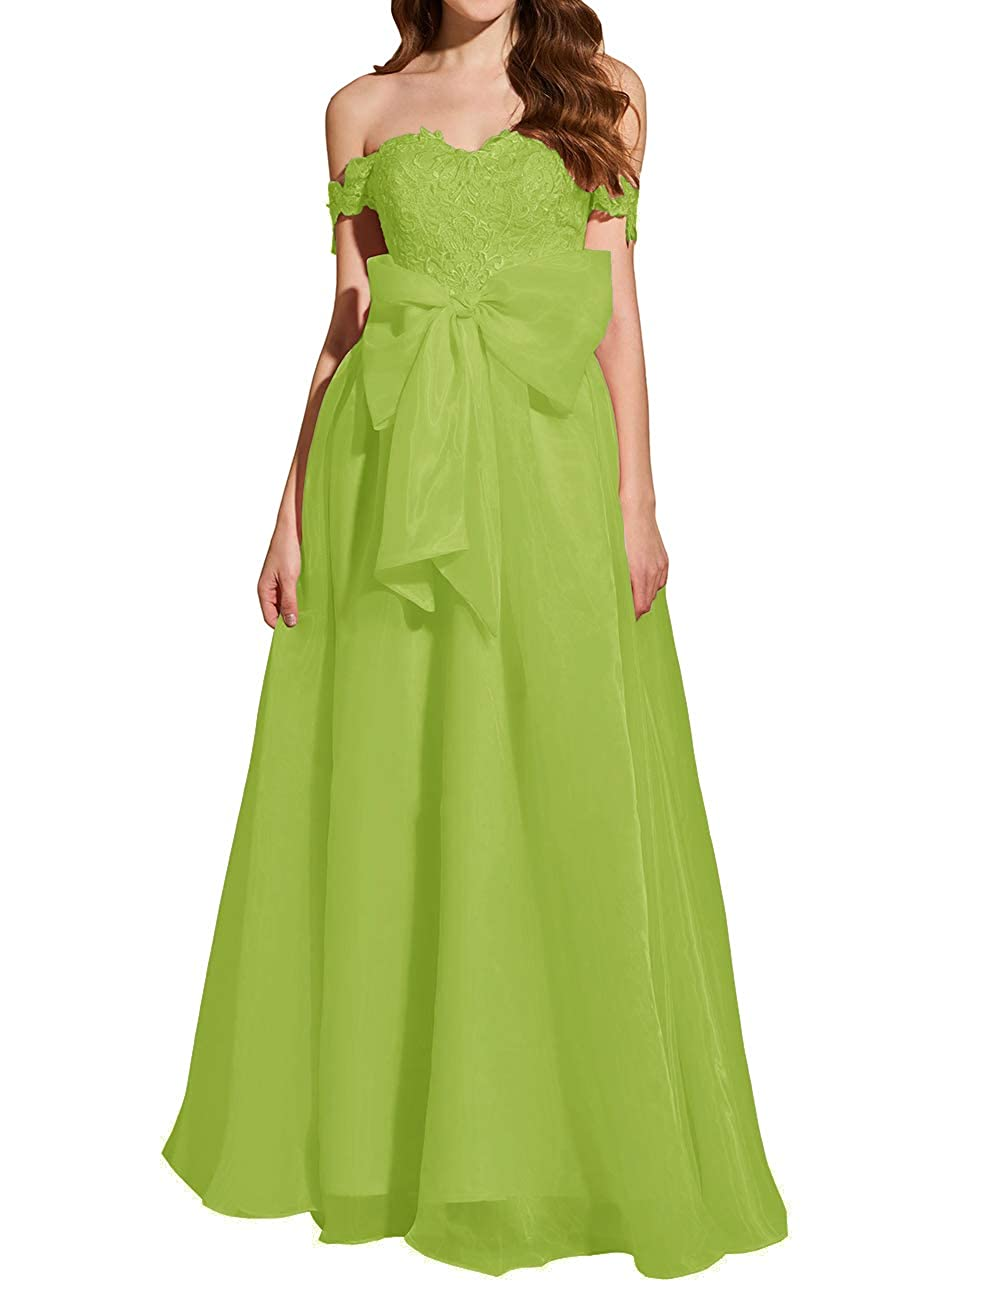 Lime Green Uther Formal Prom Dresses Off The Shoulder Appliques Long Evening Party Gowns Organza